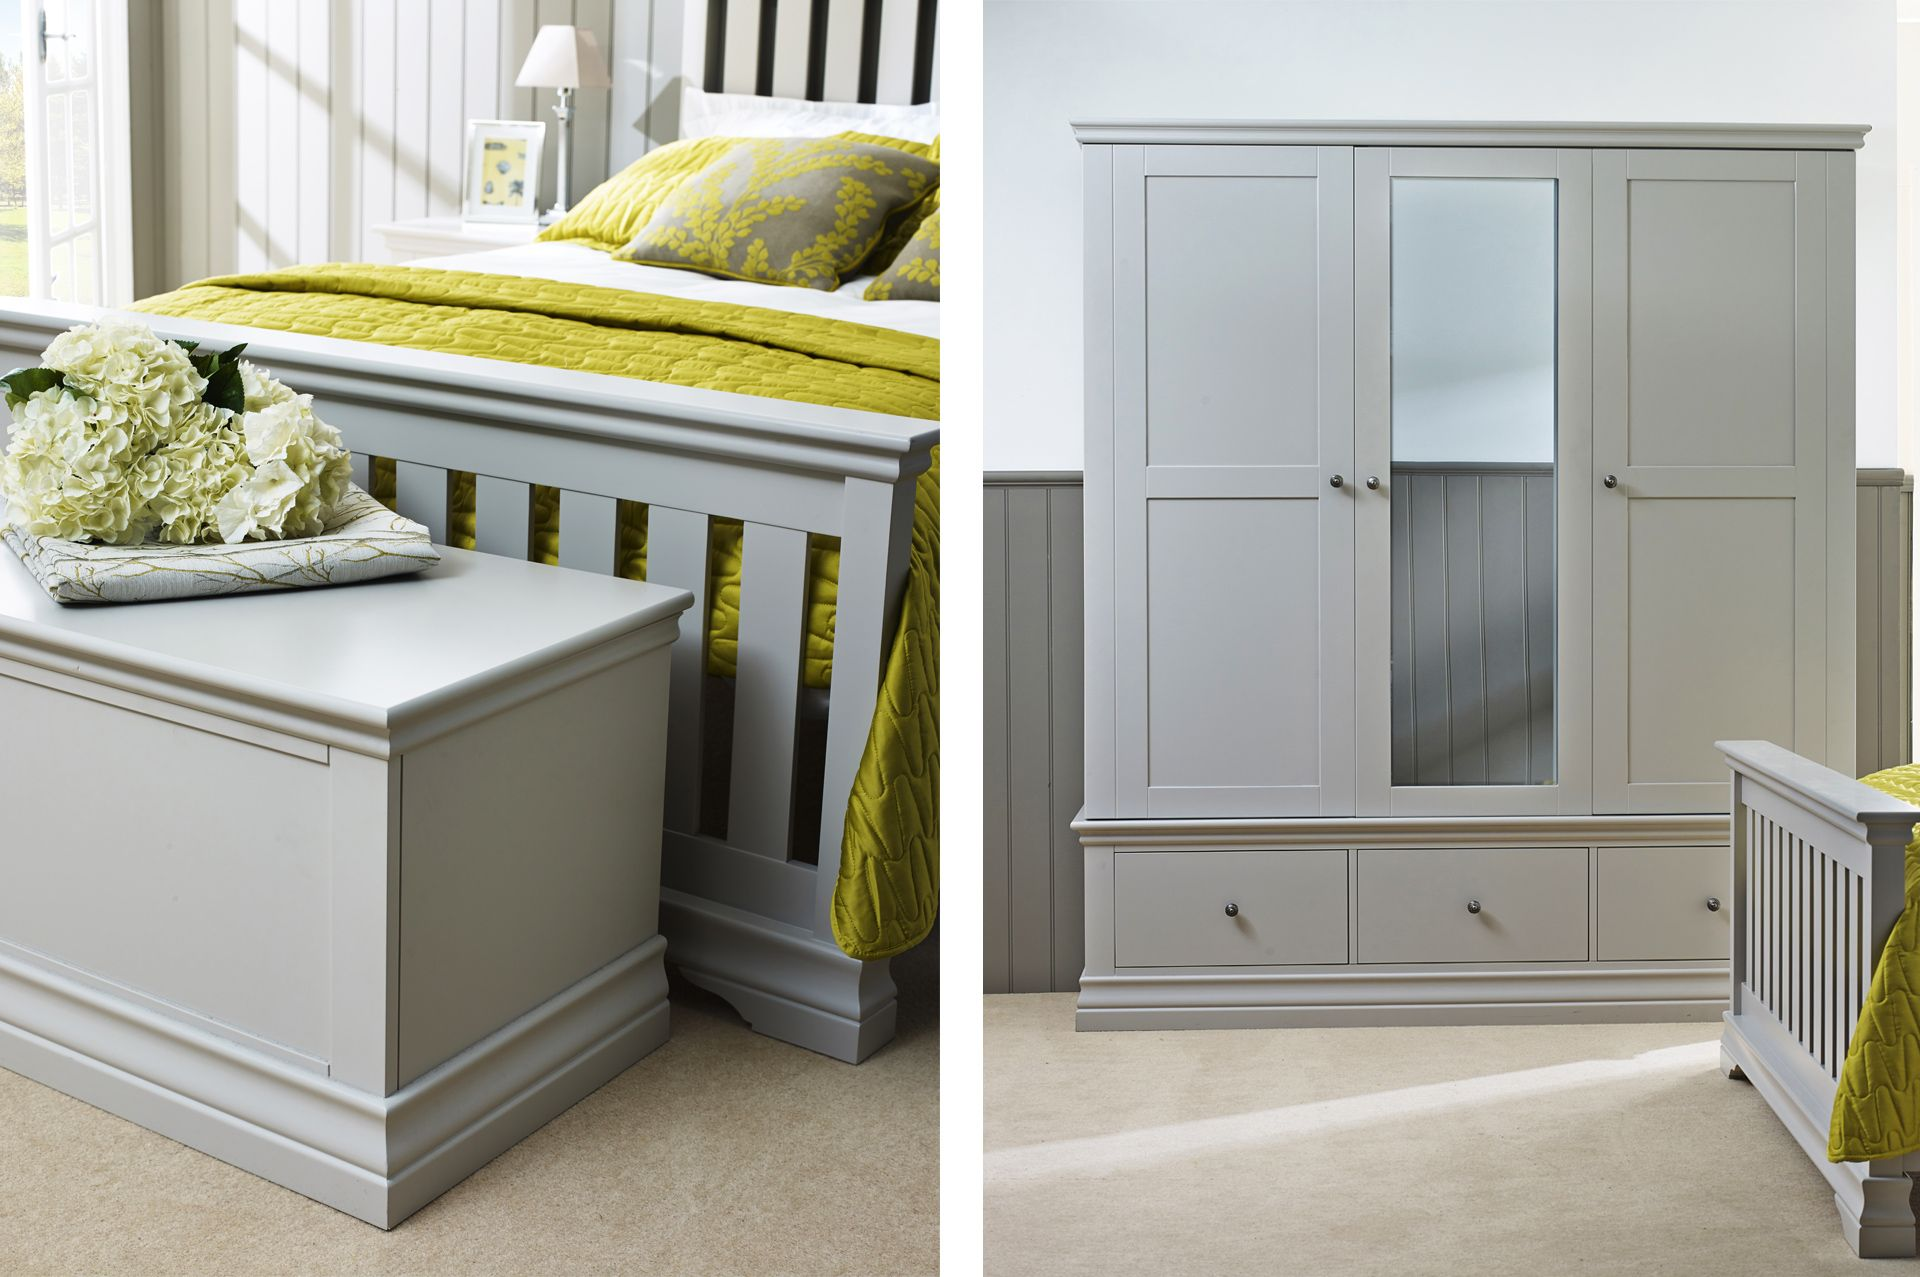 corndell annecy painted bedroom furniture | corndell annecy range